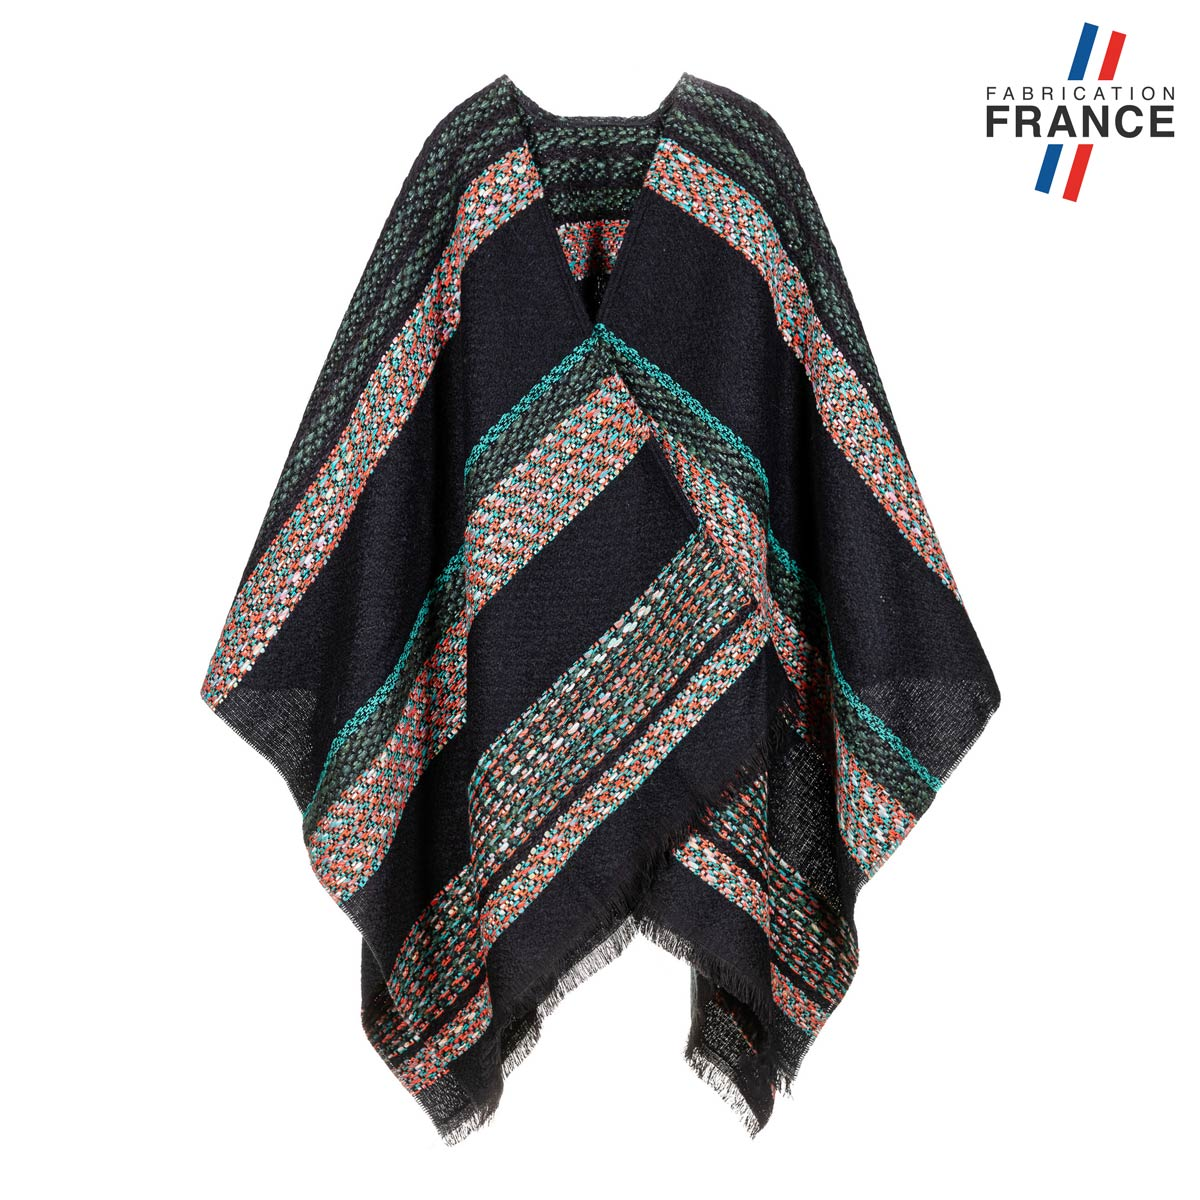 AT-06179-F12-LB_FR-poncho-femme-fantaisie-fabrication-francaise